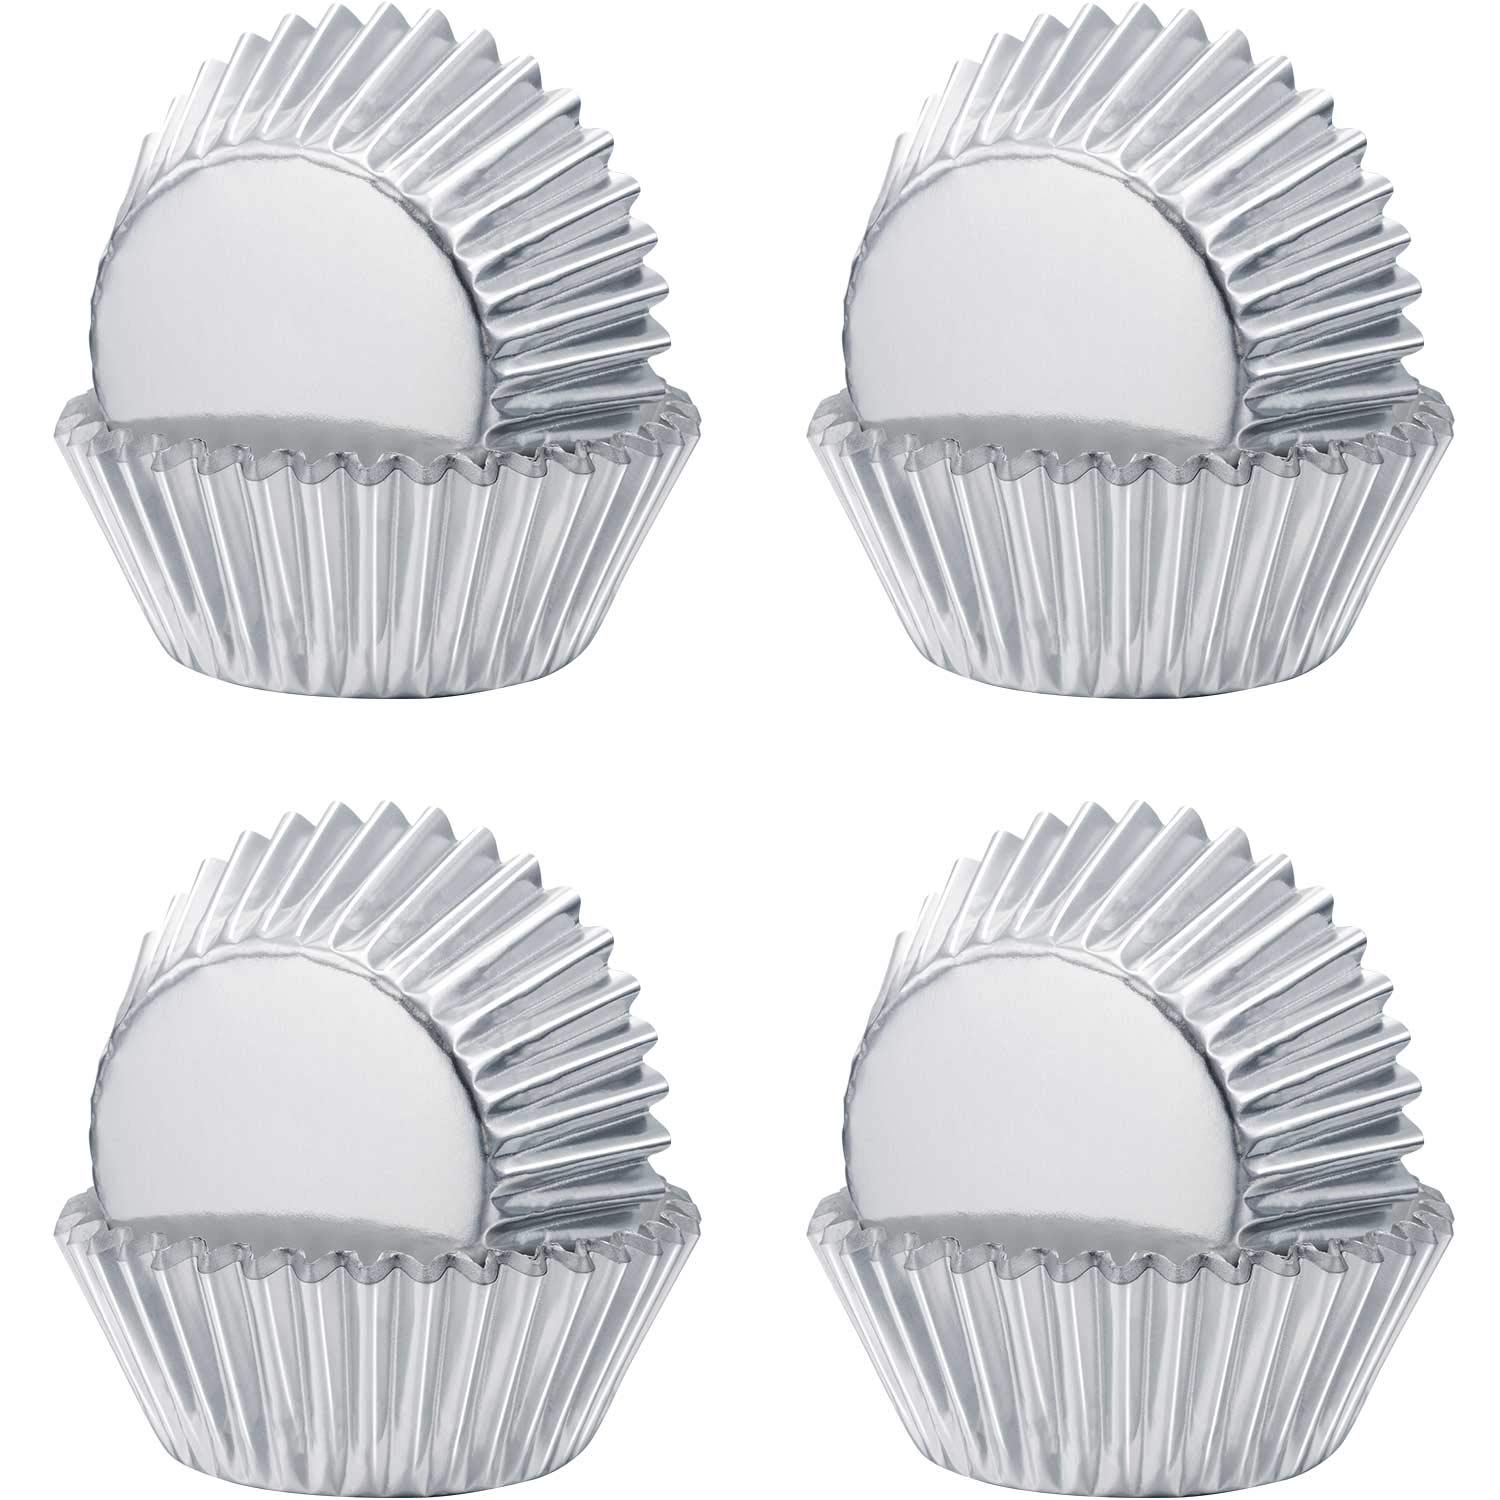 Sumind Foil Metallic Cupcake Case Liners Muffin Paper Baking Cups (Sliver, 400)